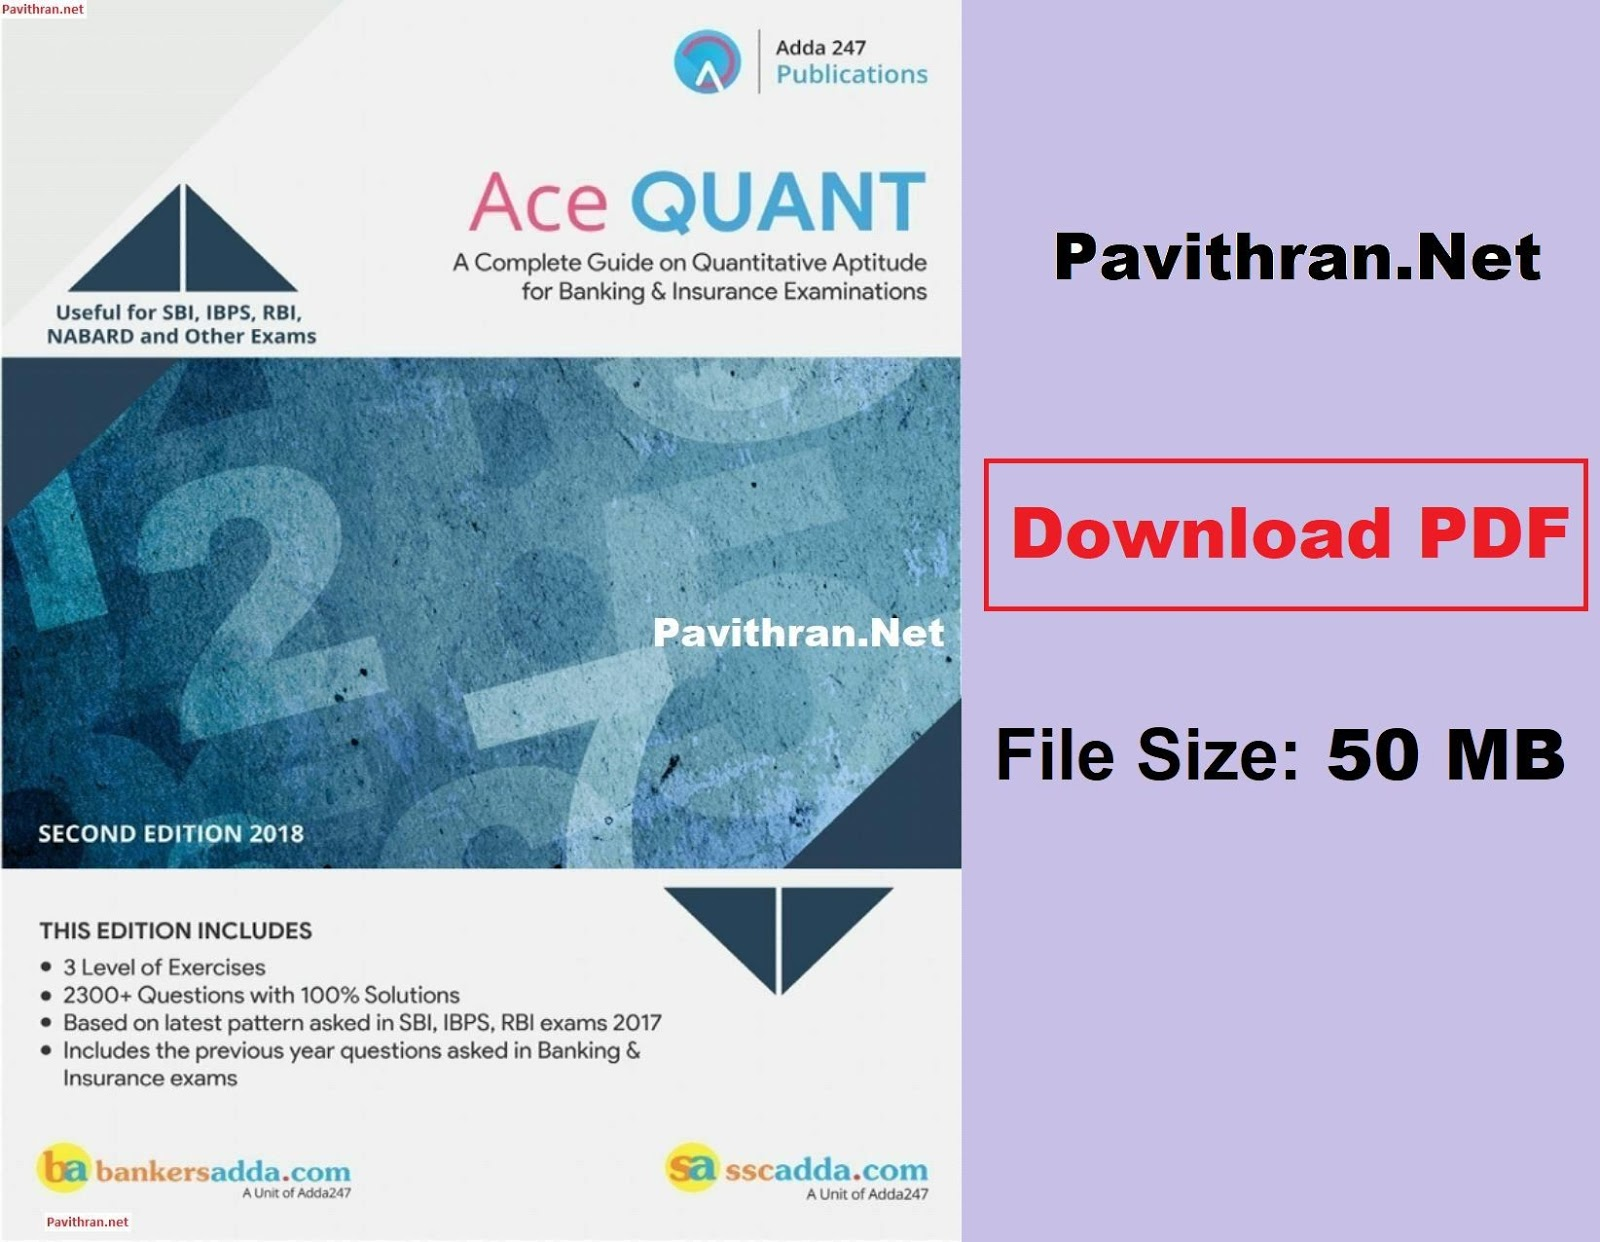 Adda247 Ace Quant Paid Aptitude Book Download PDF for All